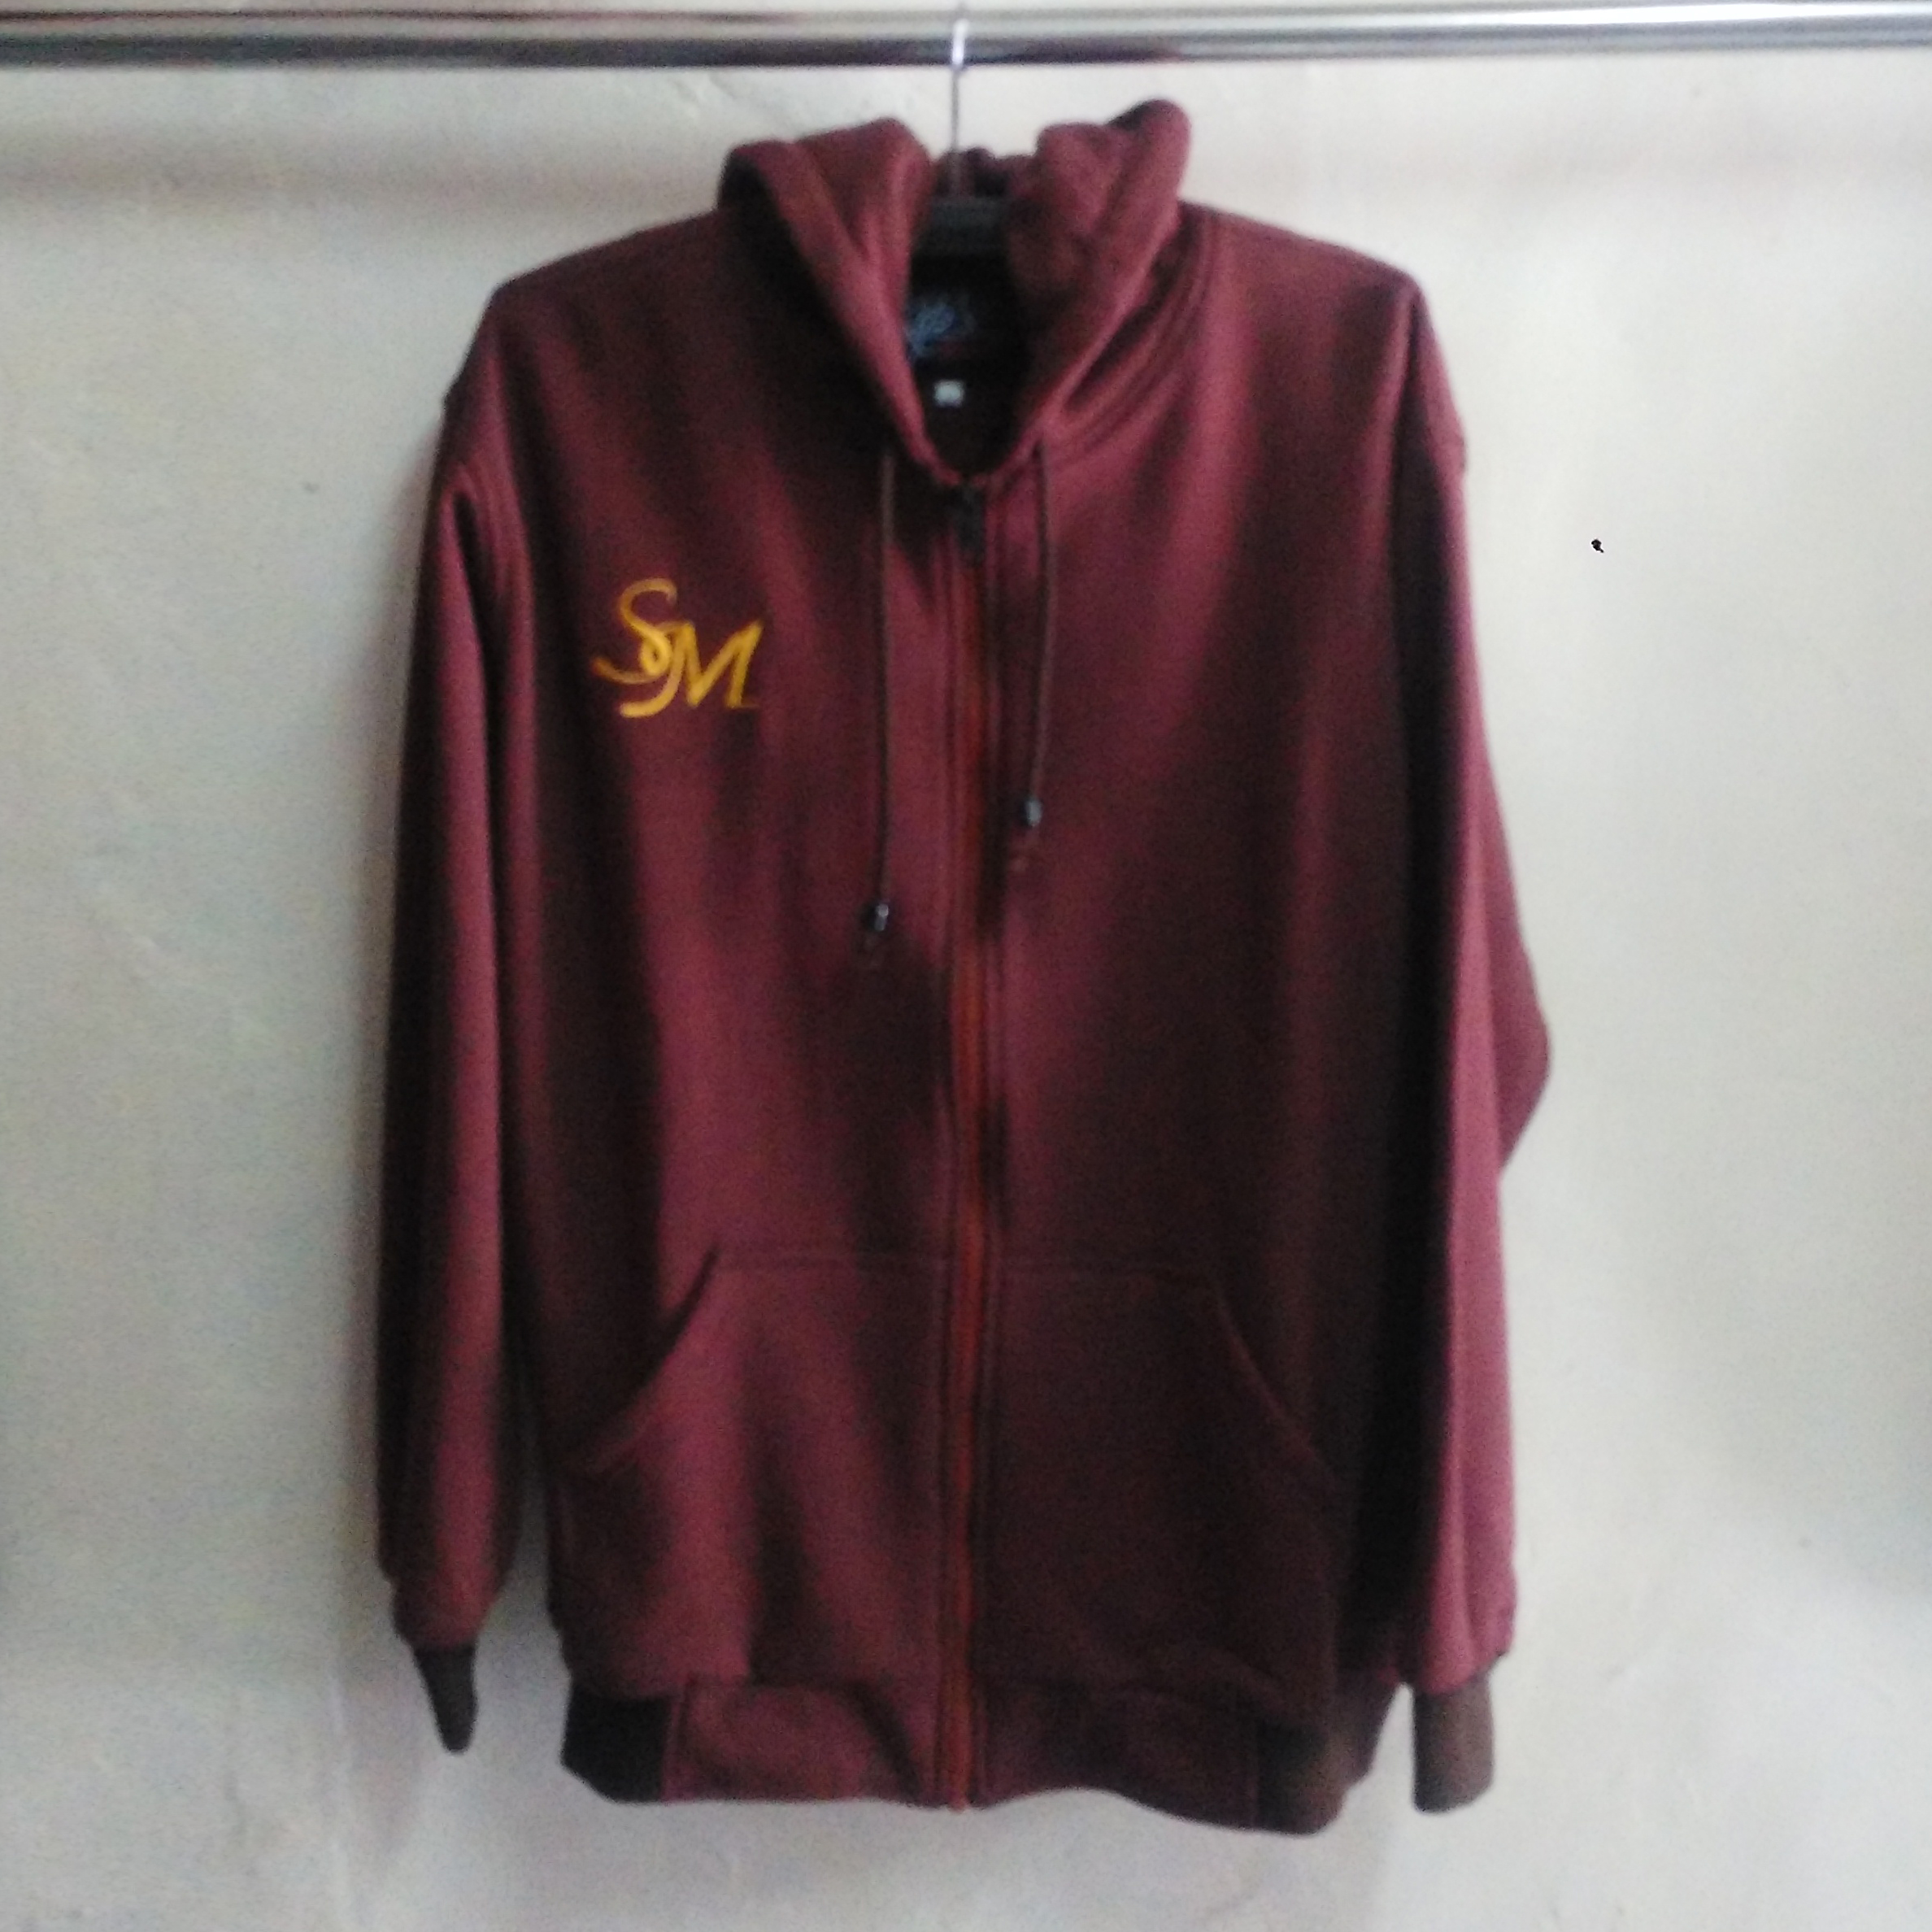 Seragam Jaket Sweater Fleece Cotton SM